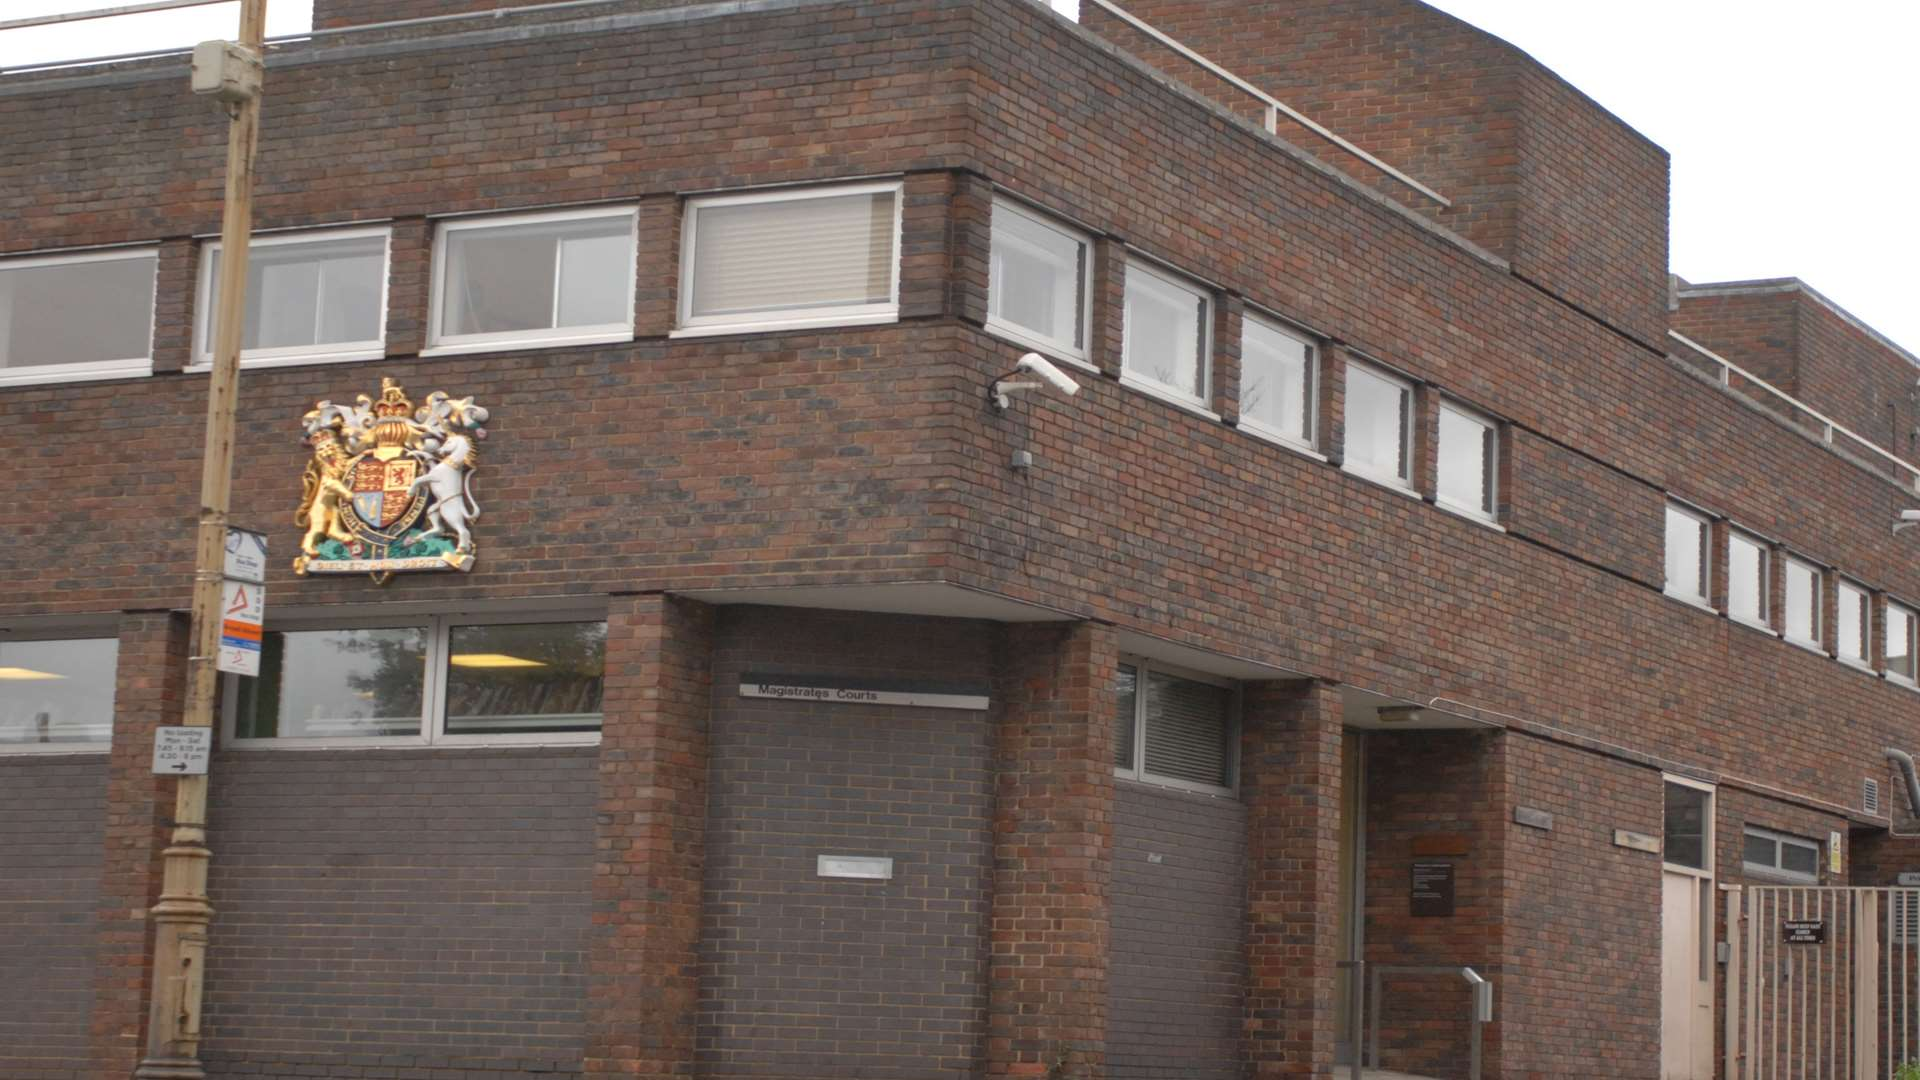 The order was granted at Canterbury Magistrates' Court